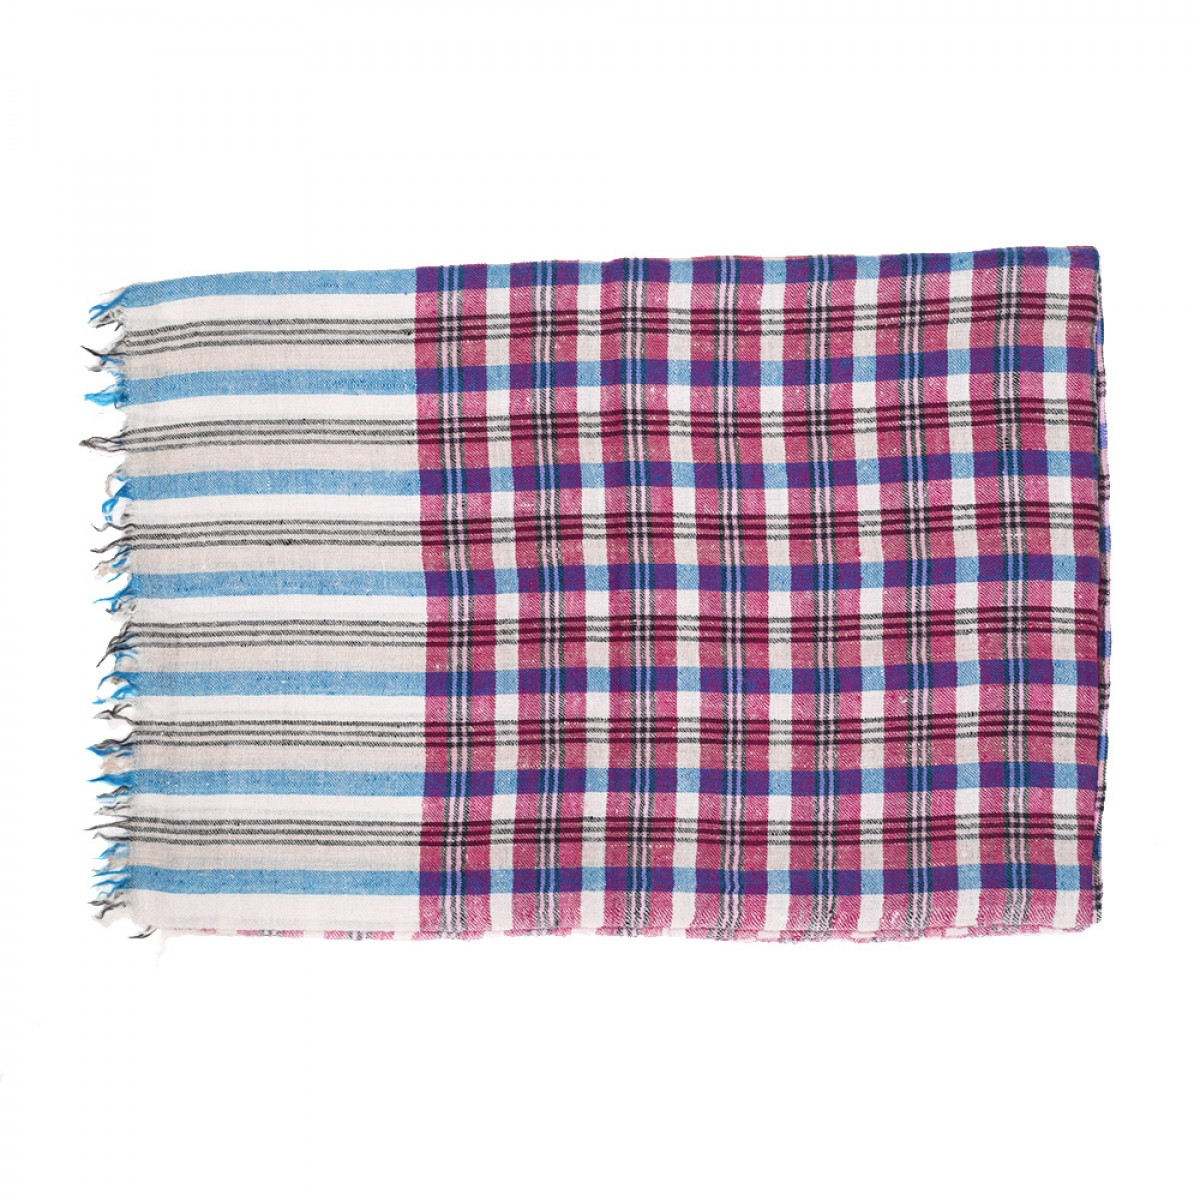 Men's Cashmere Pashmina Scarf - Natural Blue & Pink